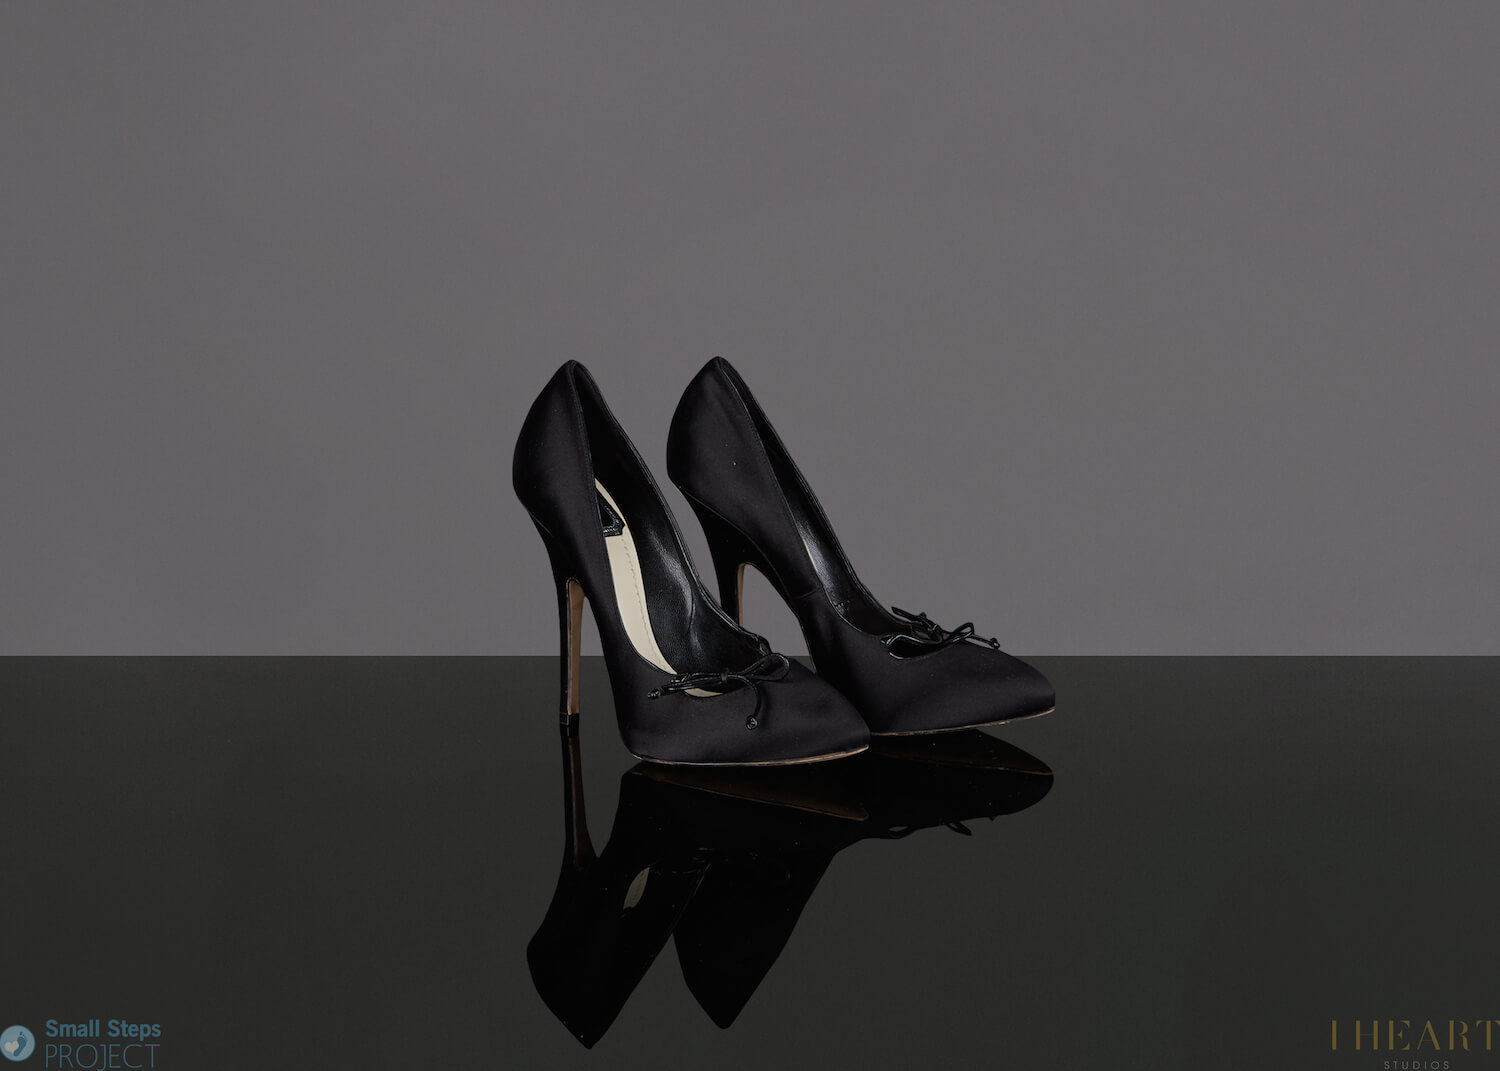 Natalie's Dior shoes were worn whilst filming her Dior commercial.